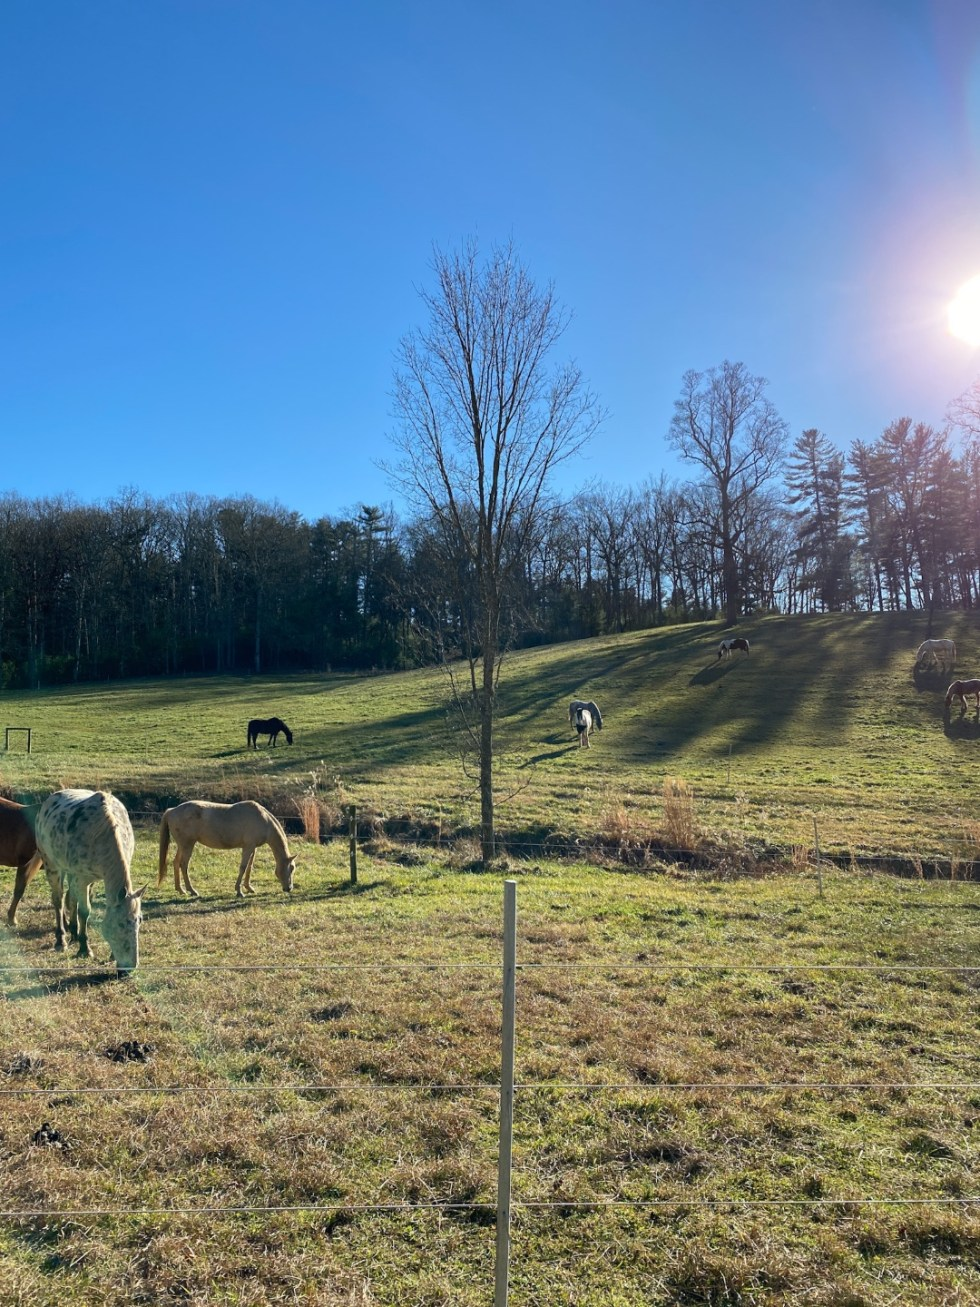 Christmas in Asheville: a Weekend Getaway During the Holidays - I'm Fixin' To - @imfixintoblog |Christmas in Asheville NC by popular NC lifestyle blog, I'm Fixin' To: image of some horses grazing outside in a pasture at The Winery.